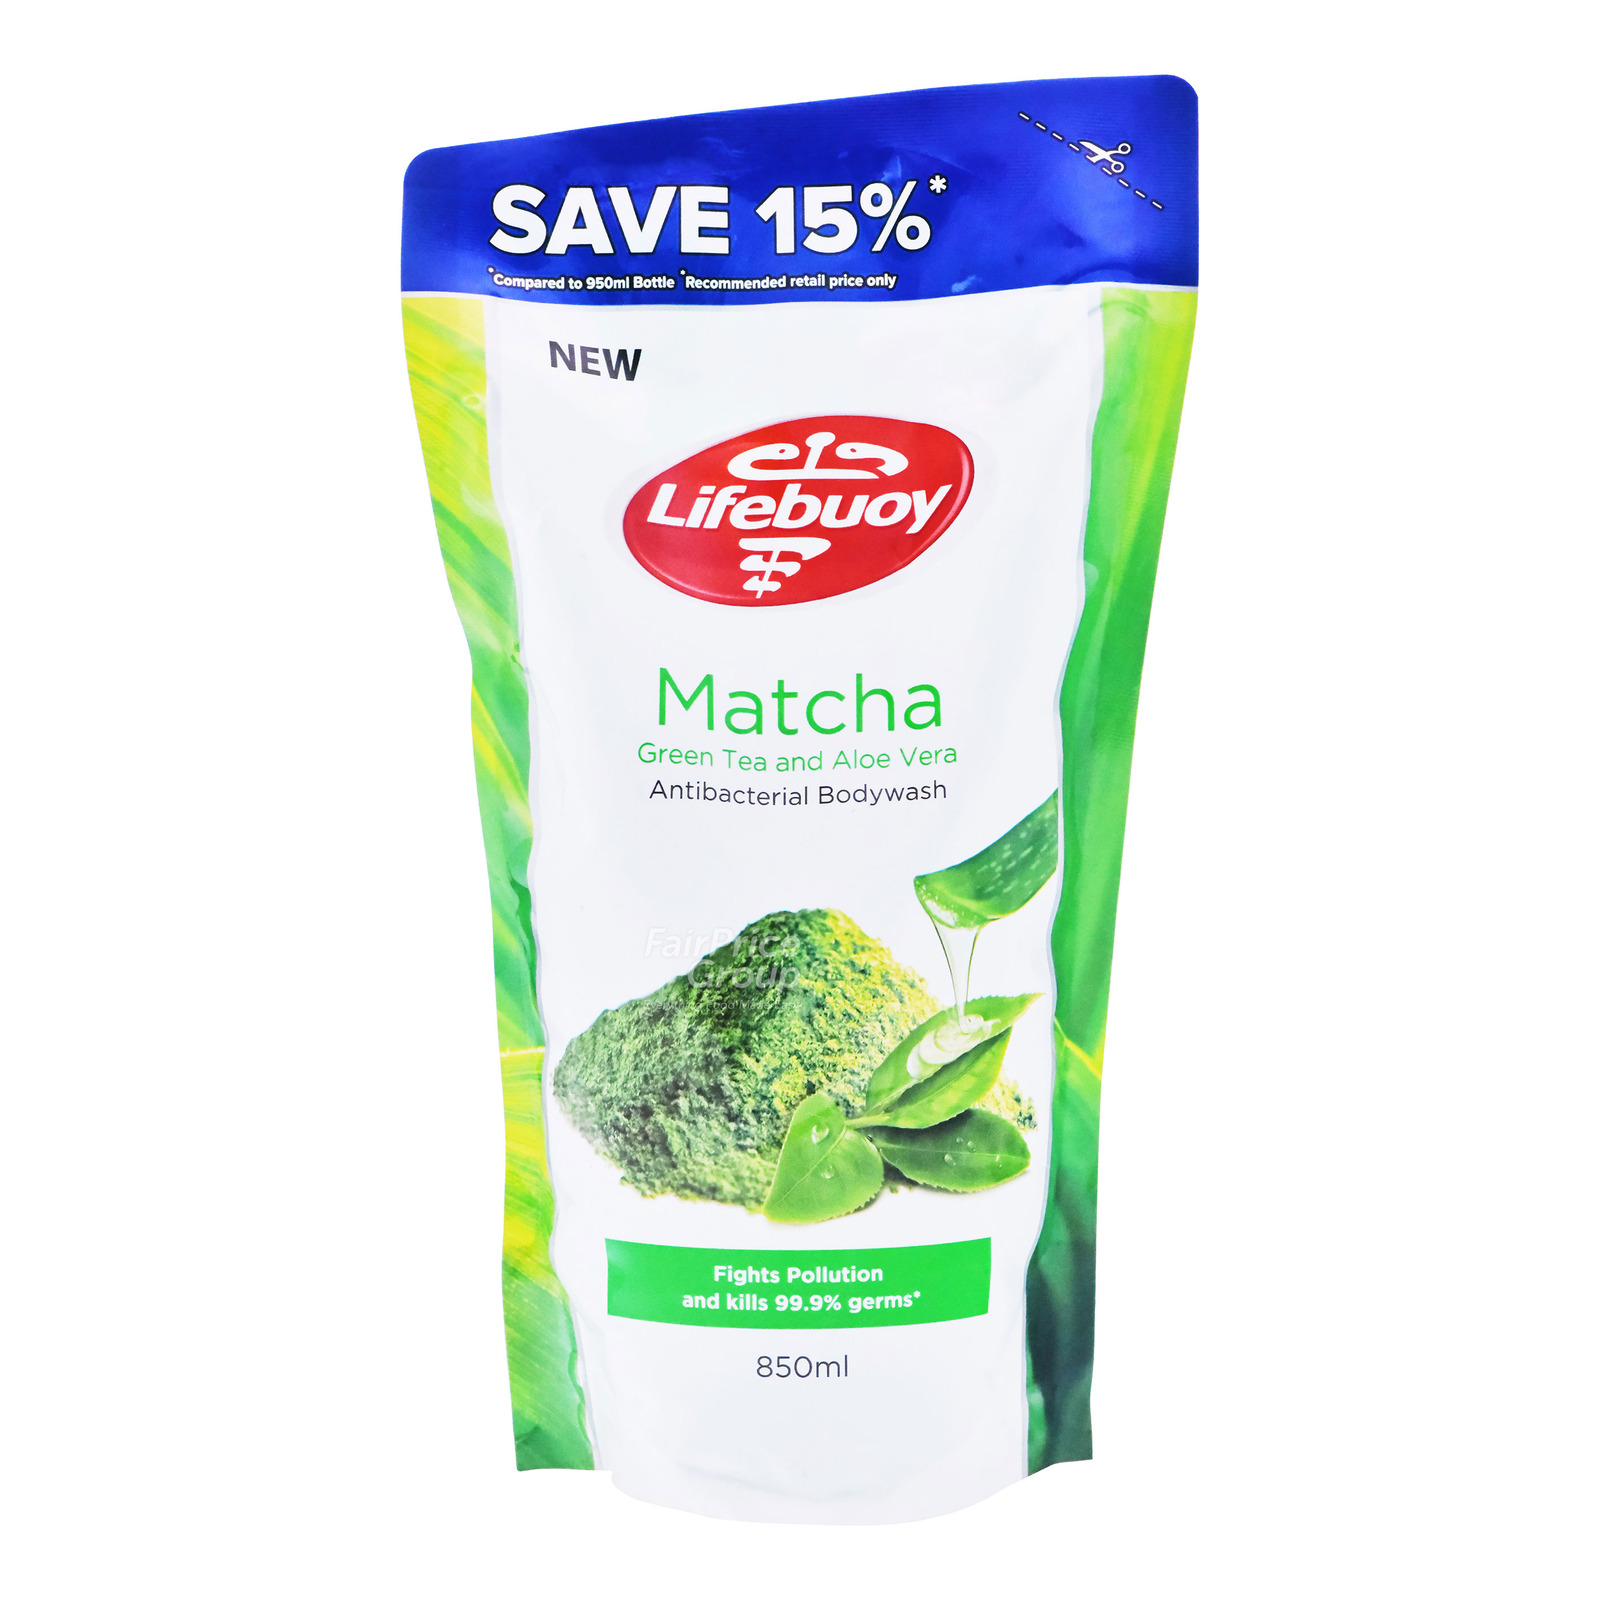 Lifebuoy Antibacterial Body Wash Refill - Matcha